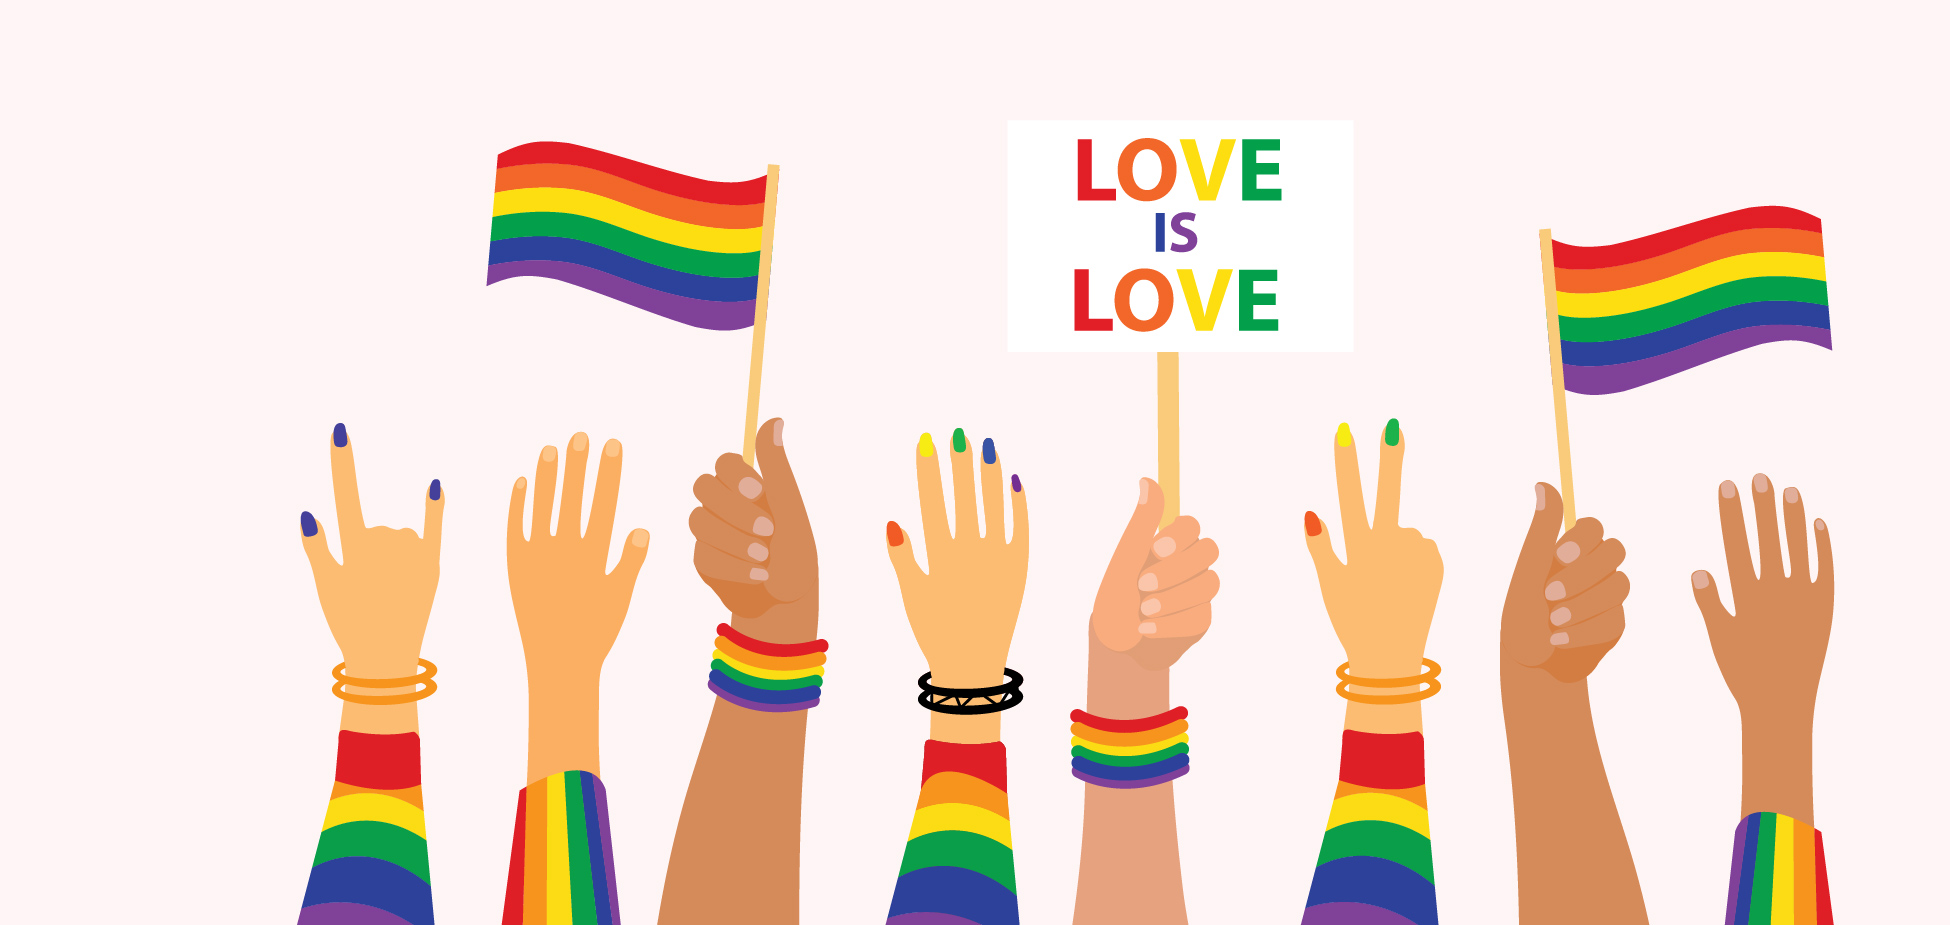 hands with rainbows and Pride flags